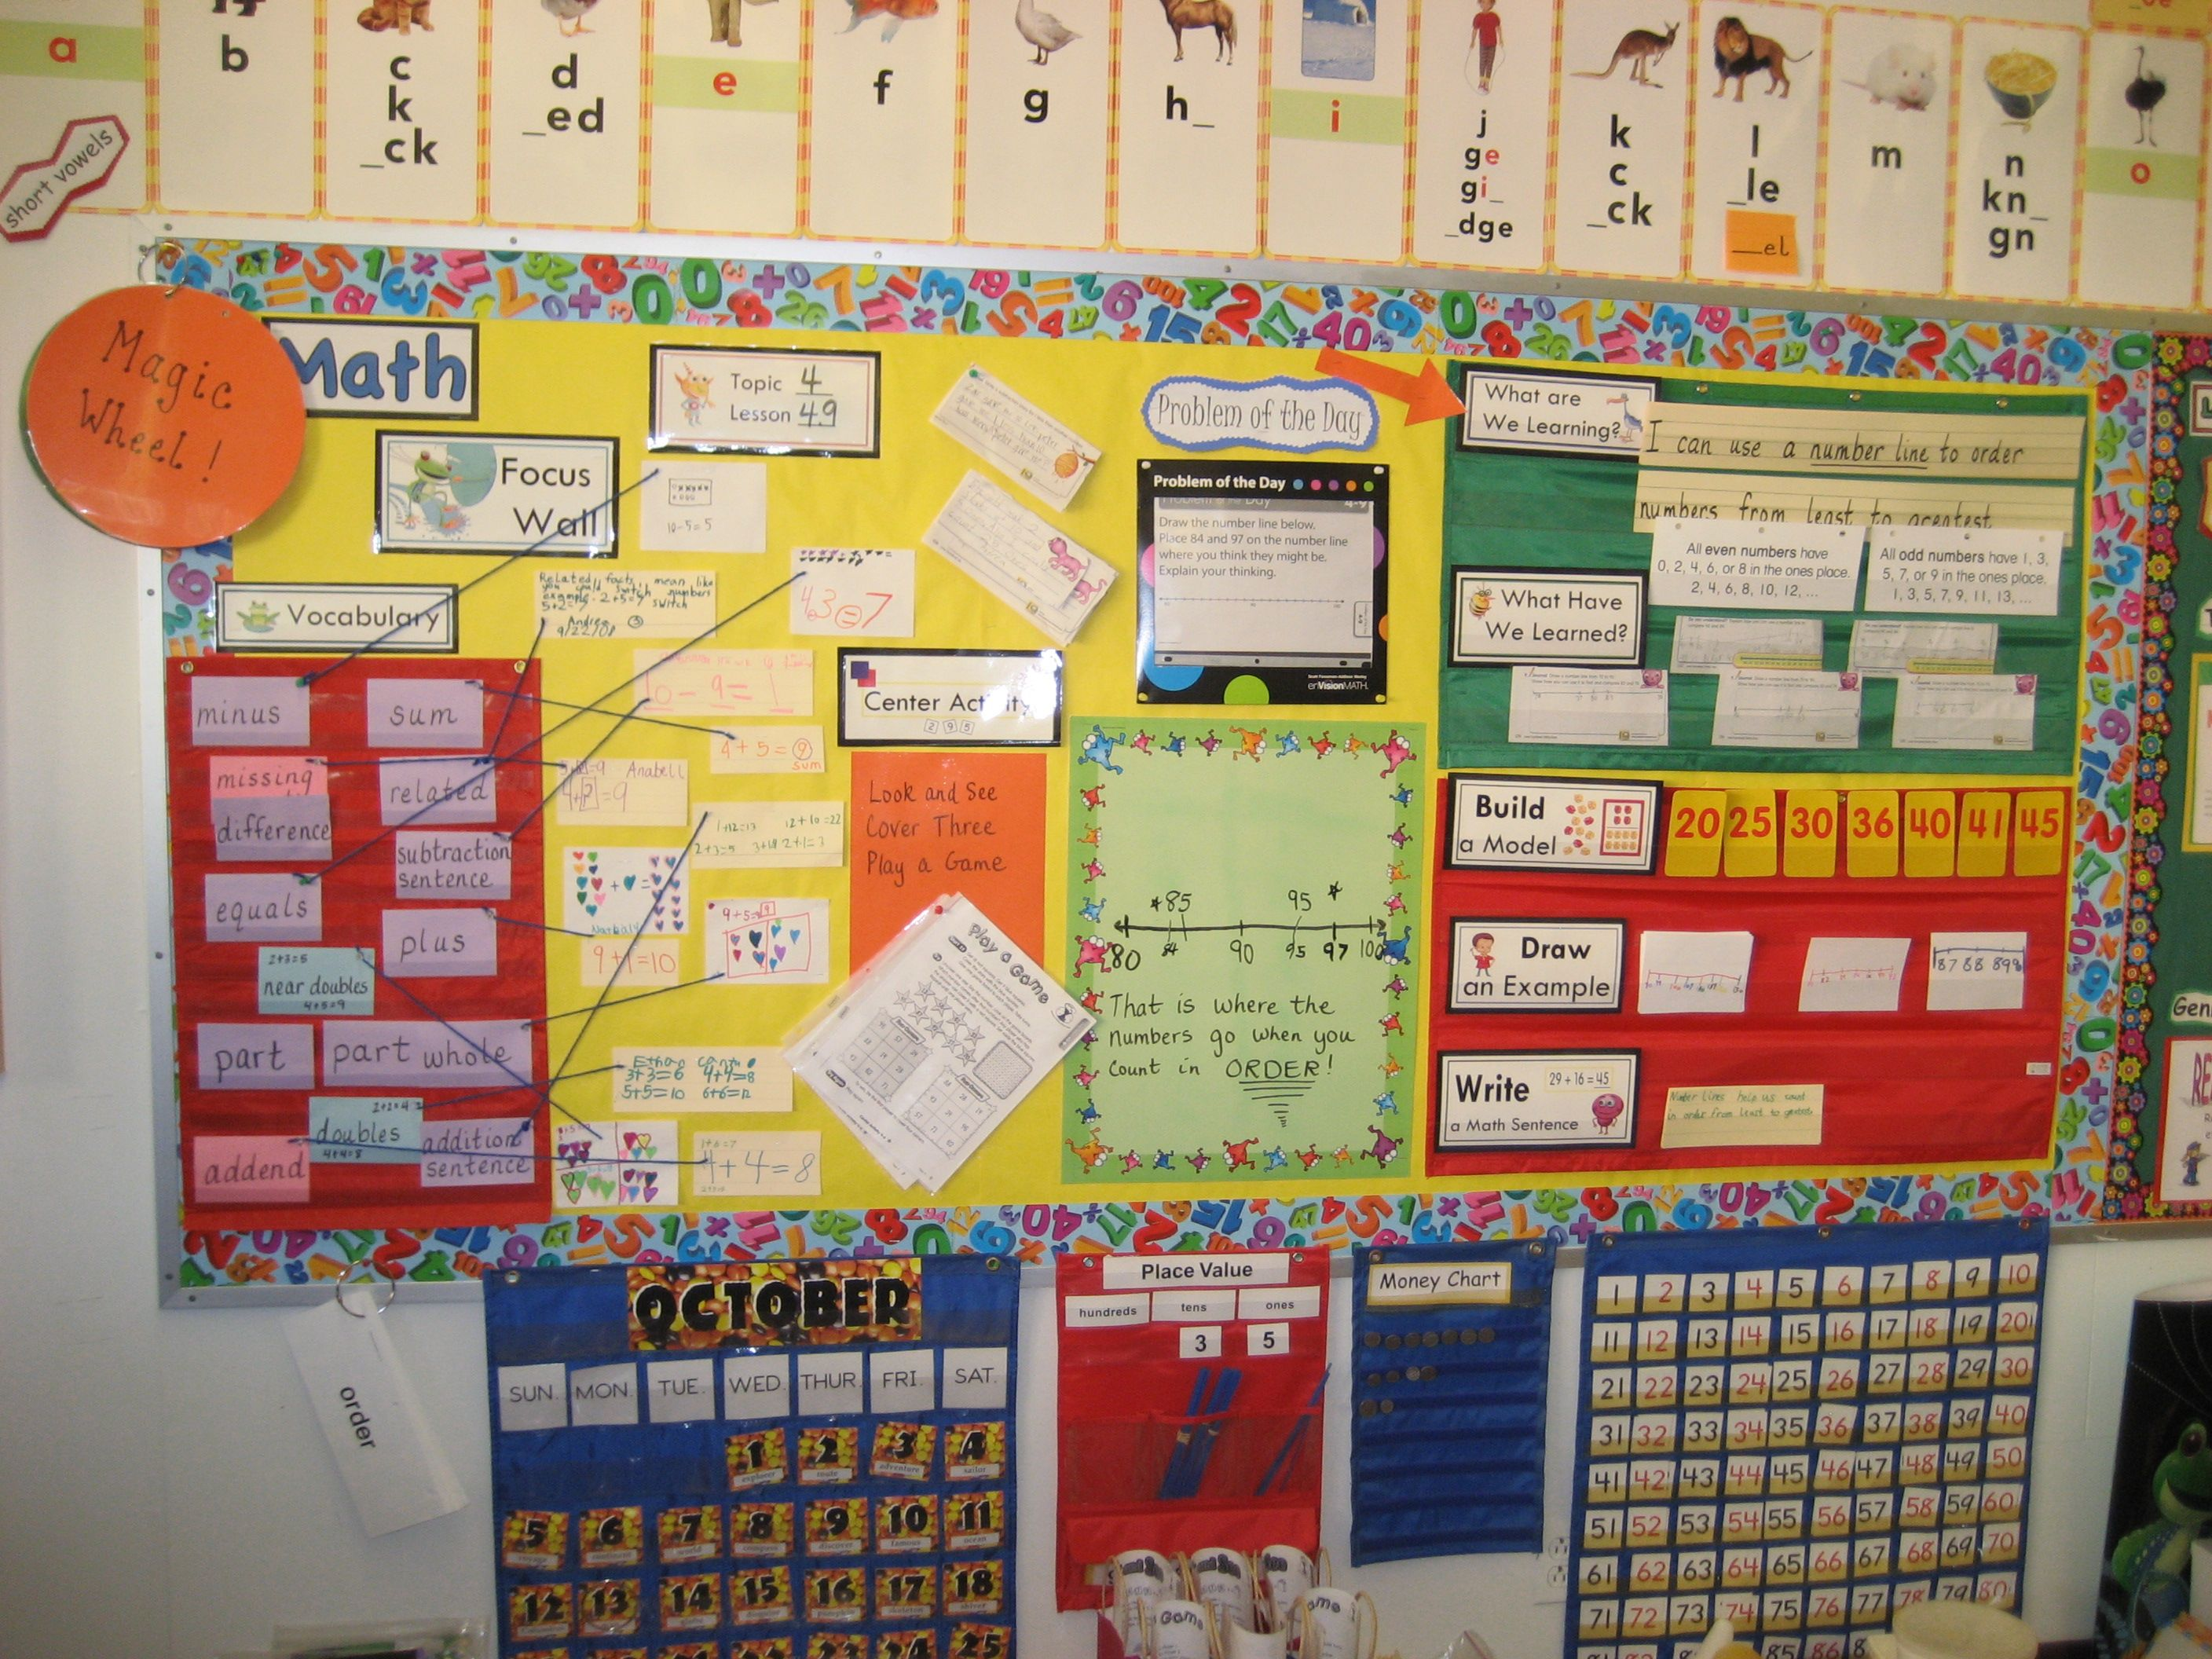 Envision Math Focus Wall